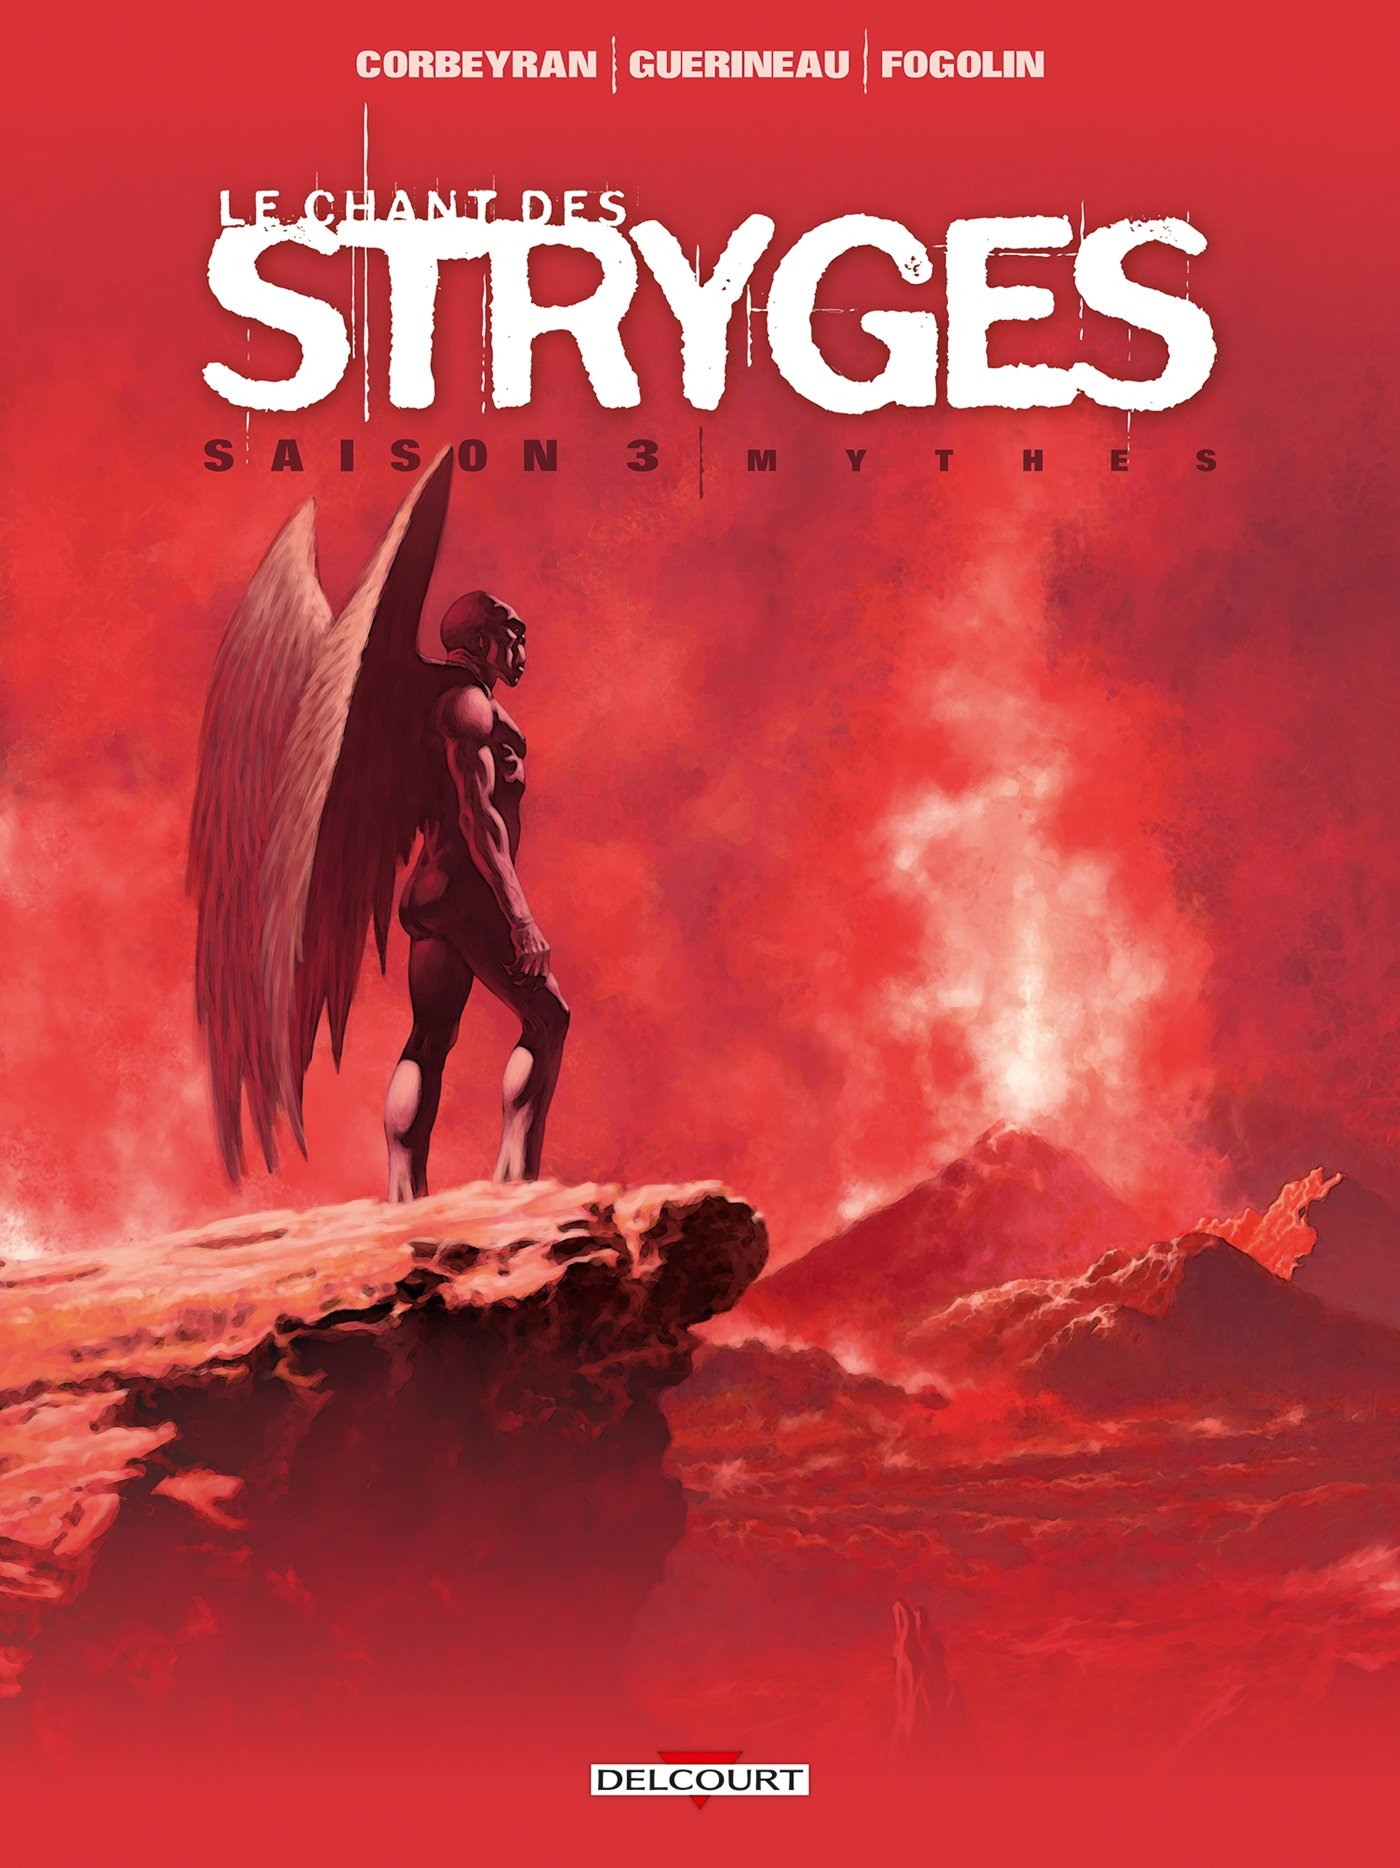 Chant des Stryges Saison 3 - 18 - Mythes Album – 20 juin 2018 Corbeyran Dimitri Fogolin Richard Guerineau Delcourt